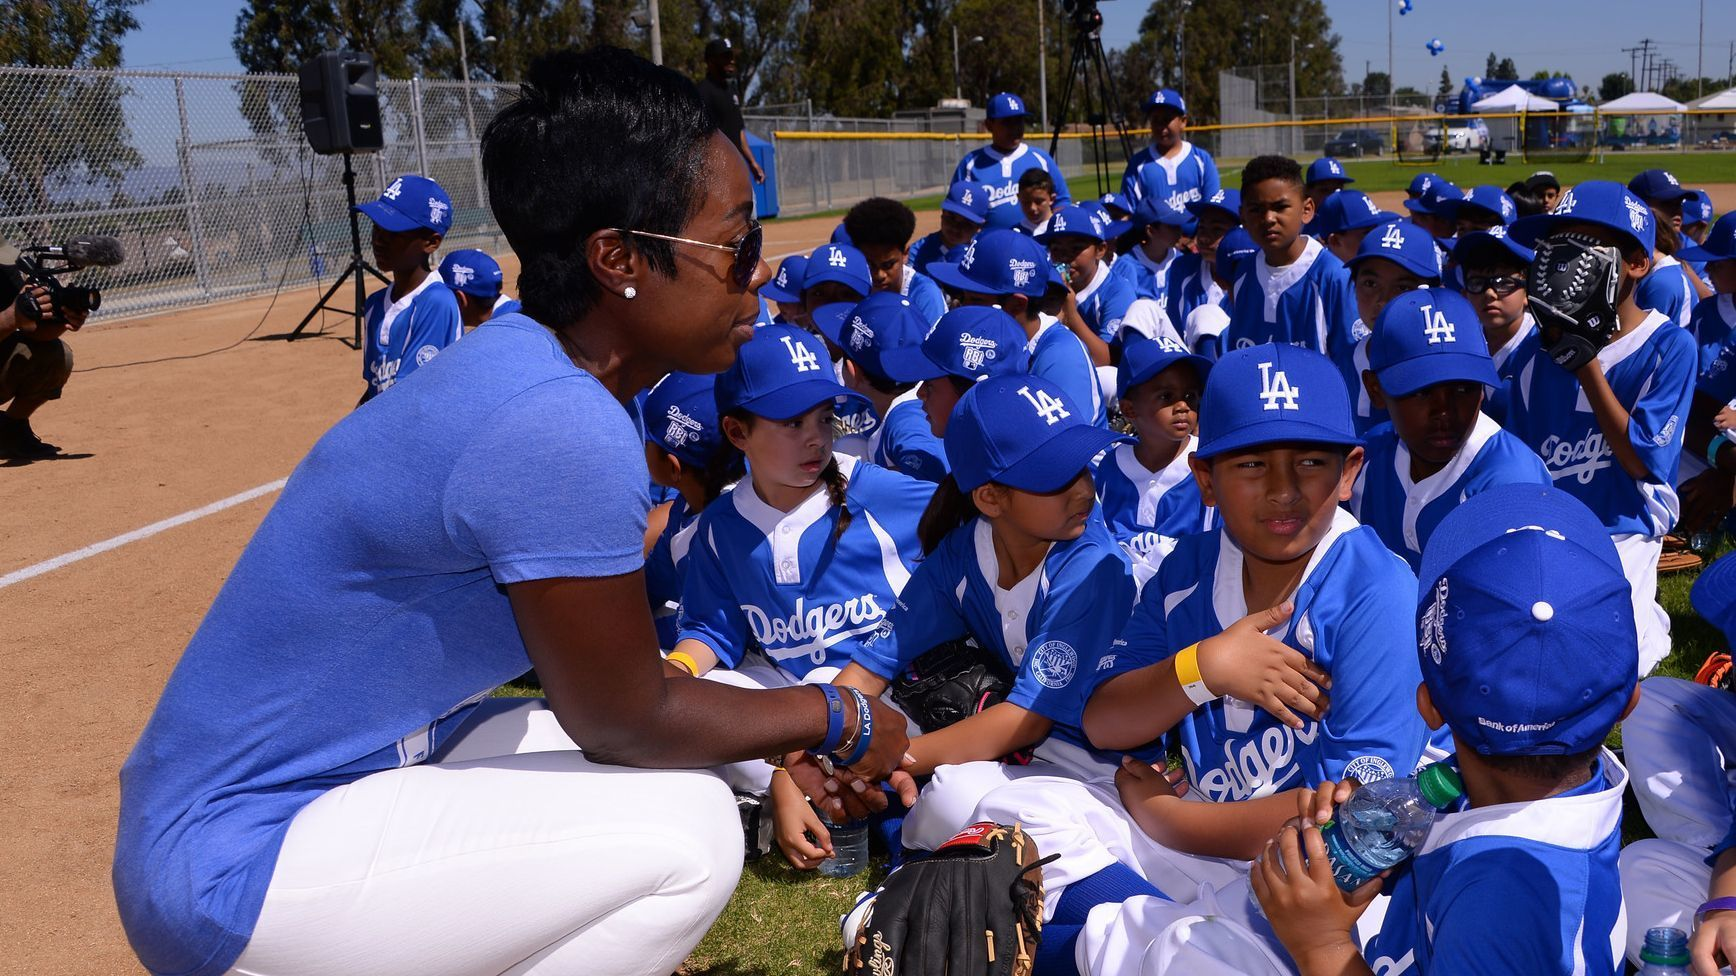 Onetime Jackie Robinson scholarship recipient Nichol Whiteman helped the Dodgers Foundation find its swing